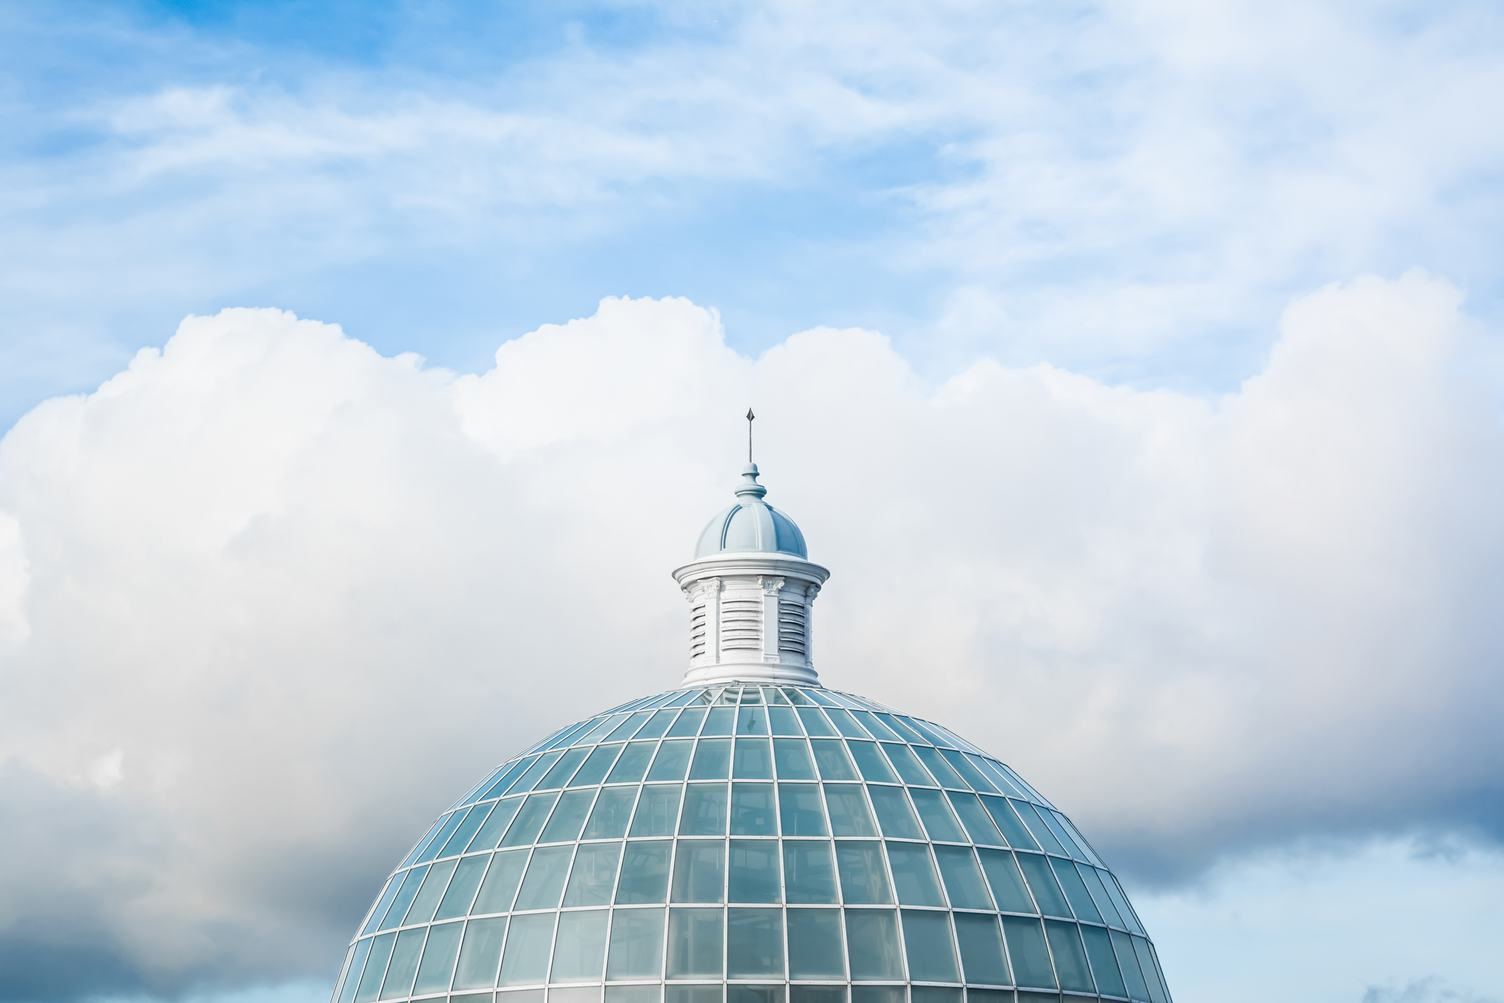 Glass Roofed Dome